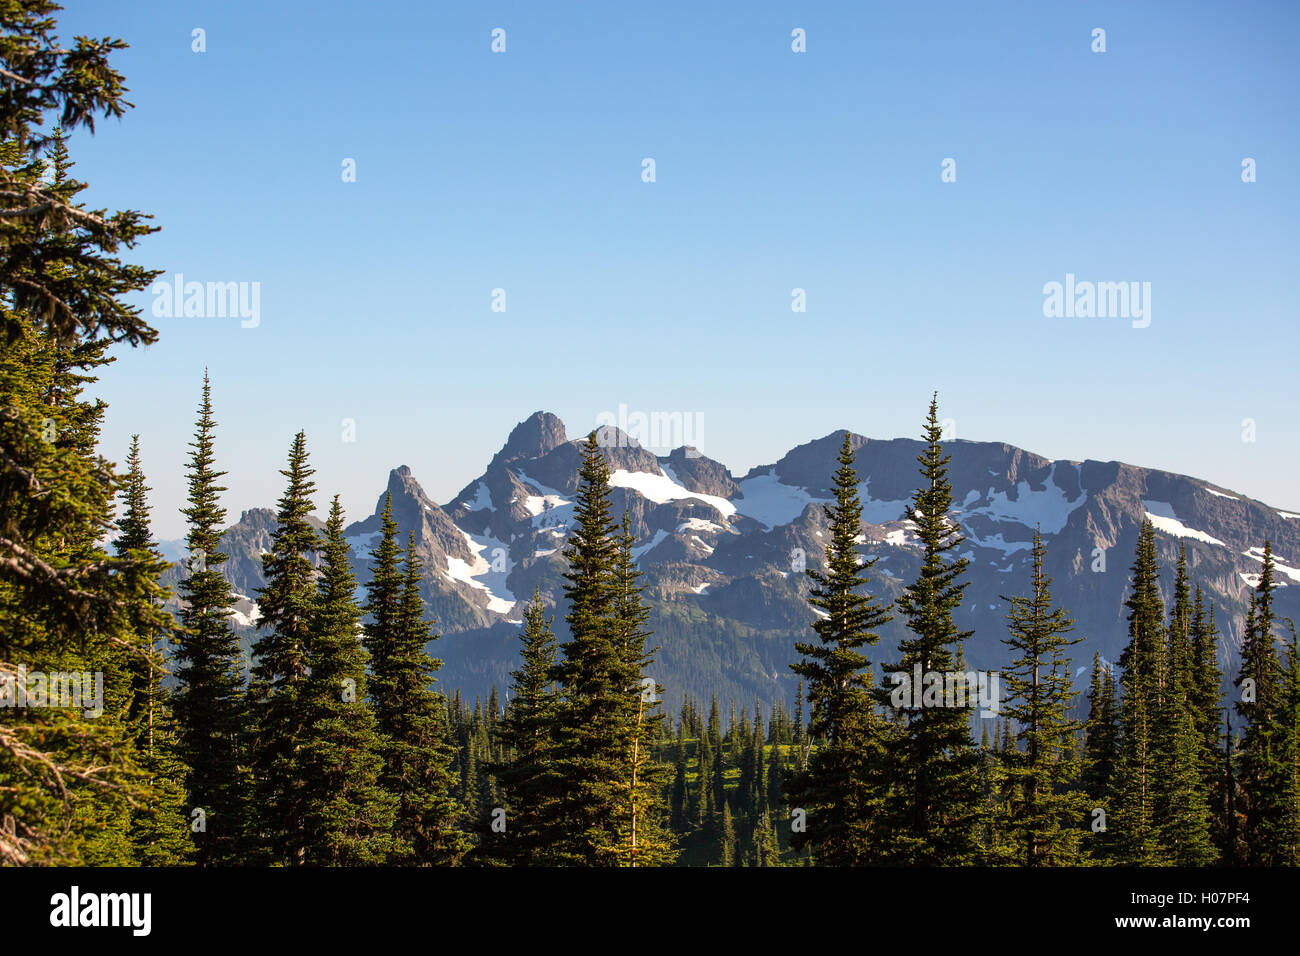 Evergreen trees with a mountain capped with snow. - Stock Image